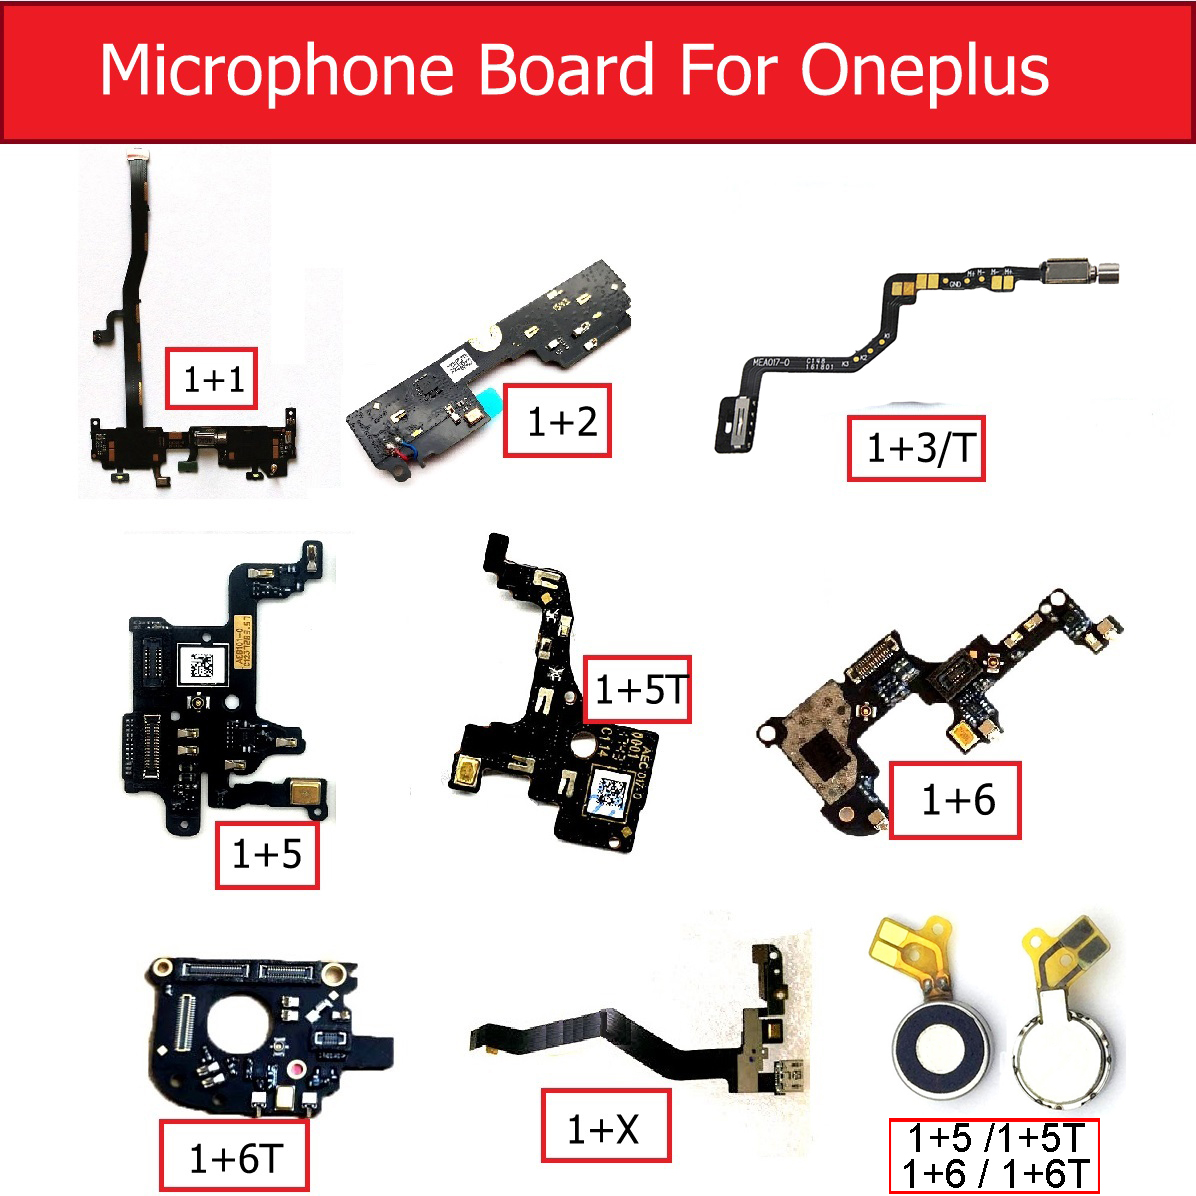 100% NEW Microphone Board Module For OnePlus 1 2 3 3T 5 5T 6 6T Vibrator Motor Mic Flex Cable Replacement Parts High Quality